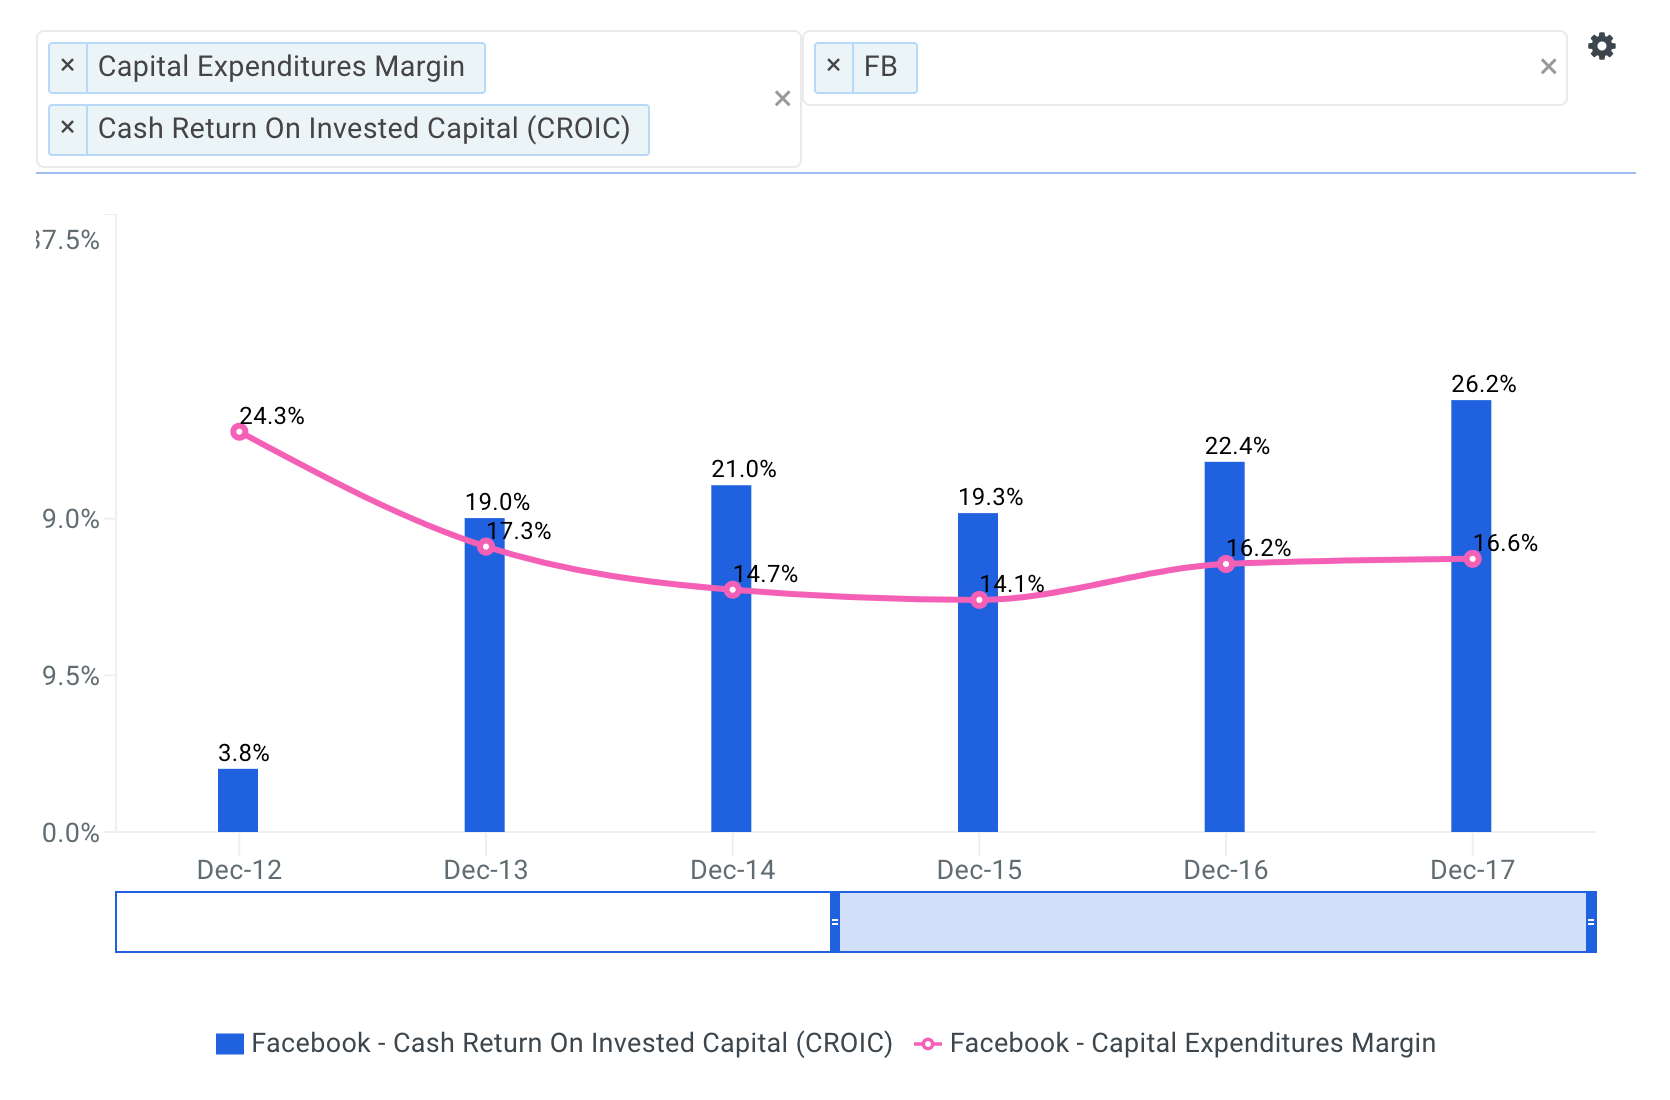 FB CROIC vs Capex Margin Chart